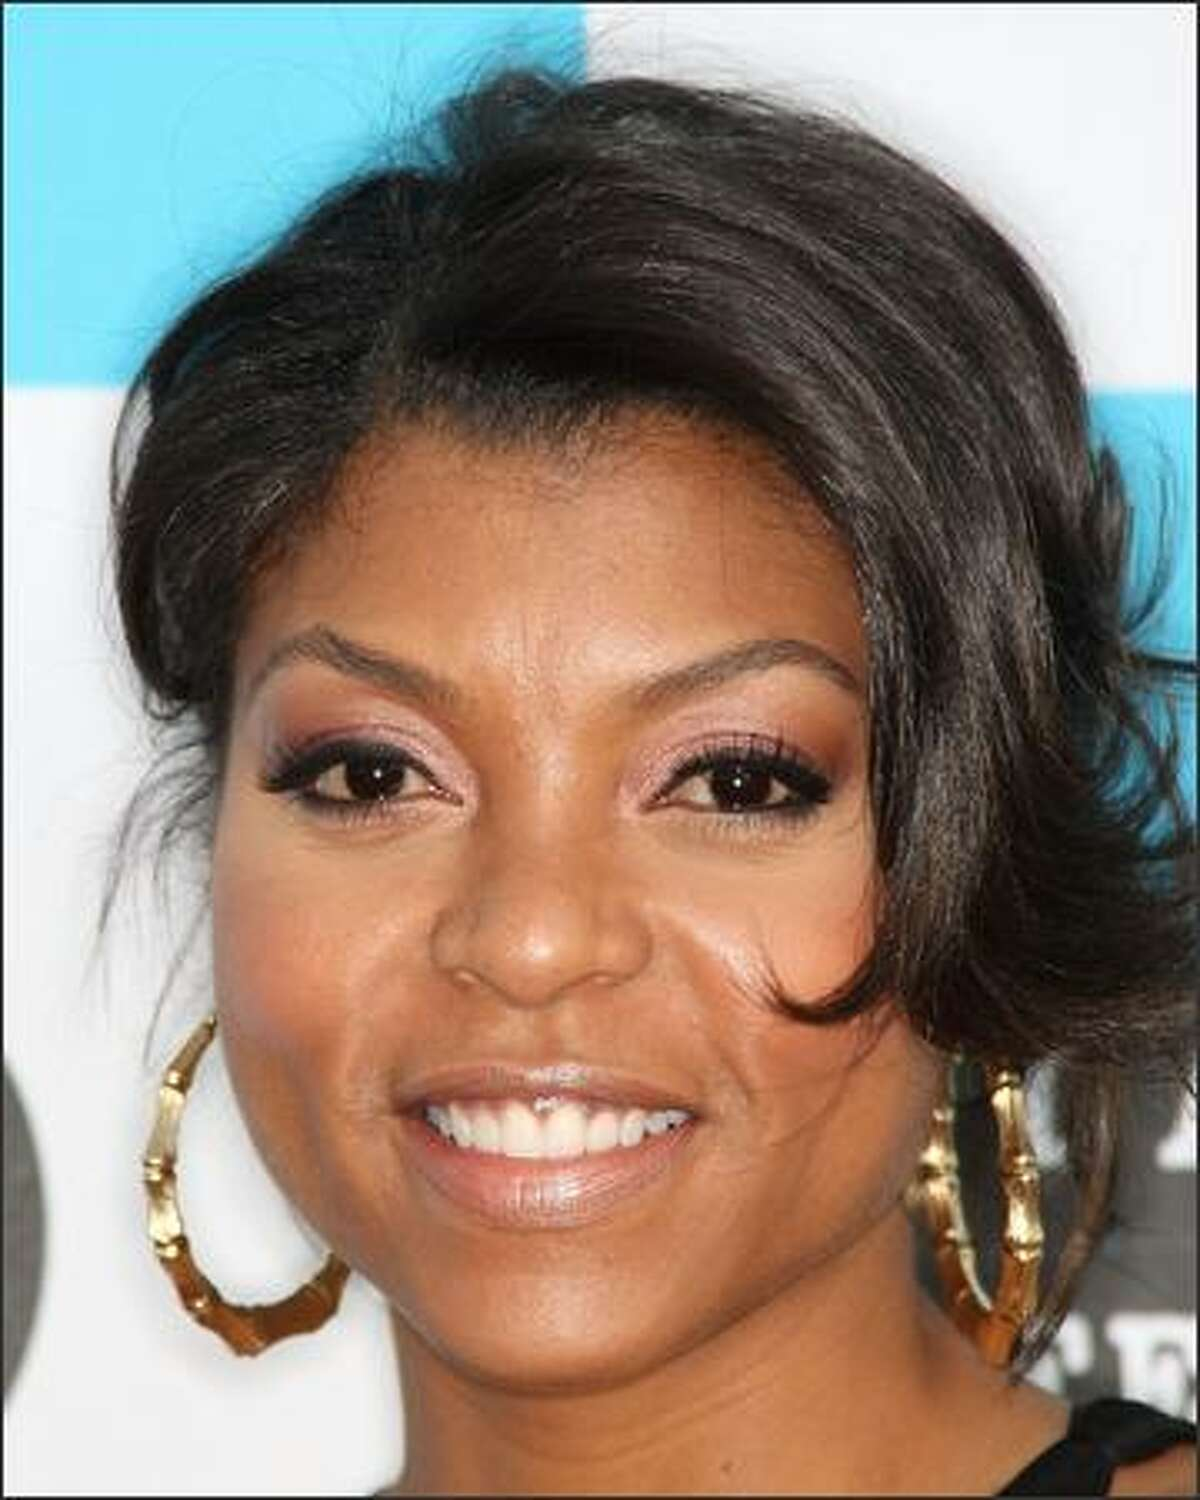 Actress Taraji Henson attends the 2008 Los Angeles Film Festival Awards Ceremony